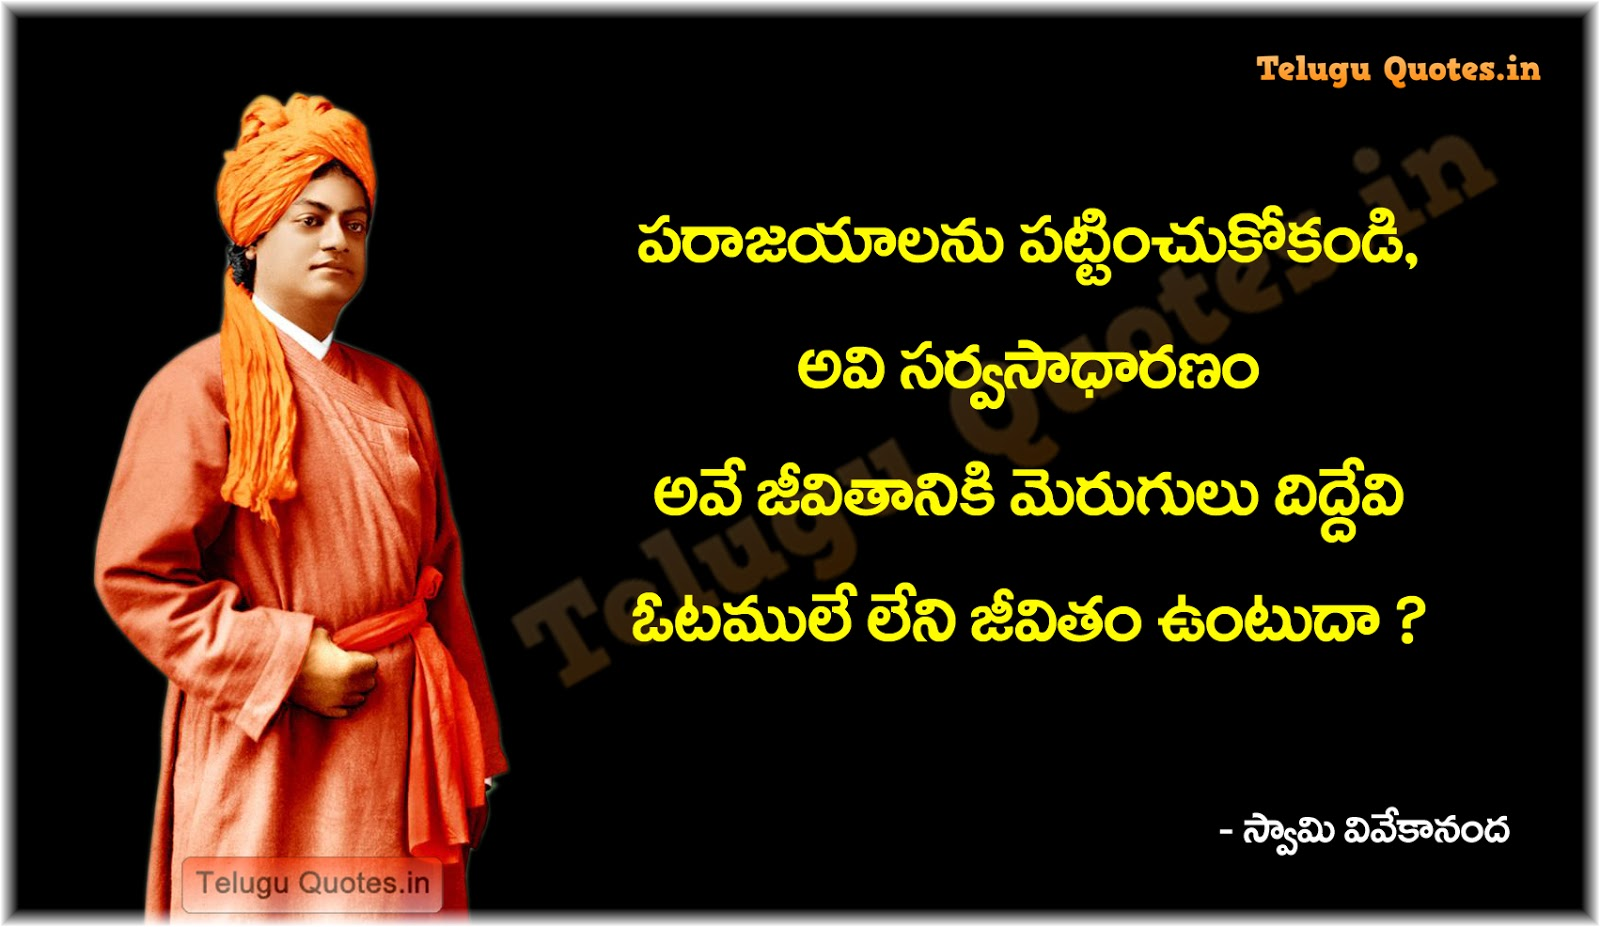 swami vivekananda quotes in telugu language pdf